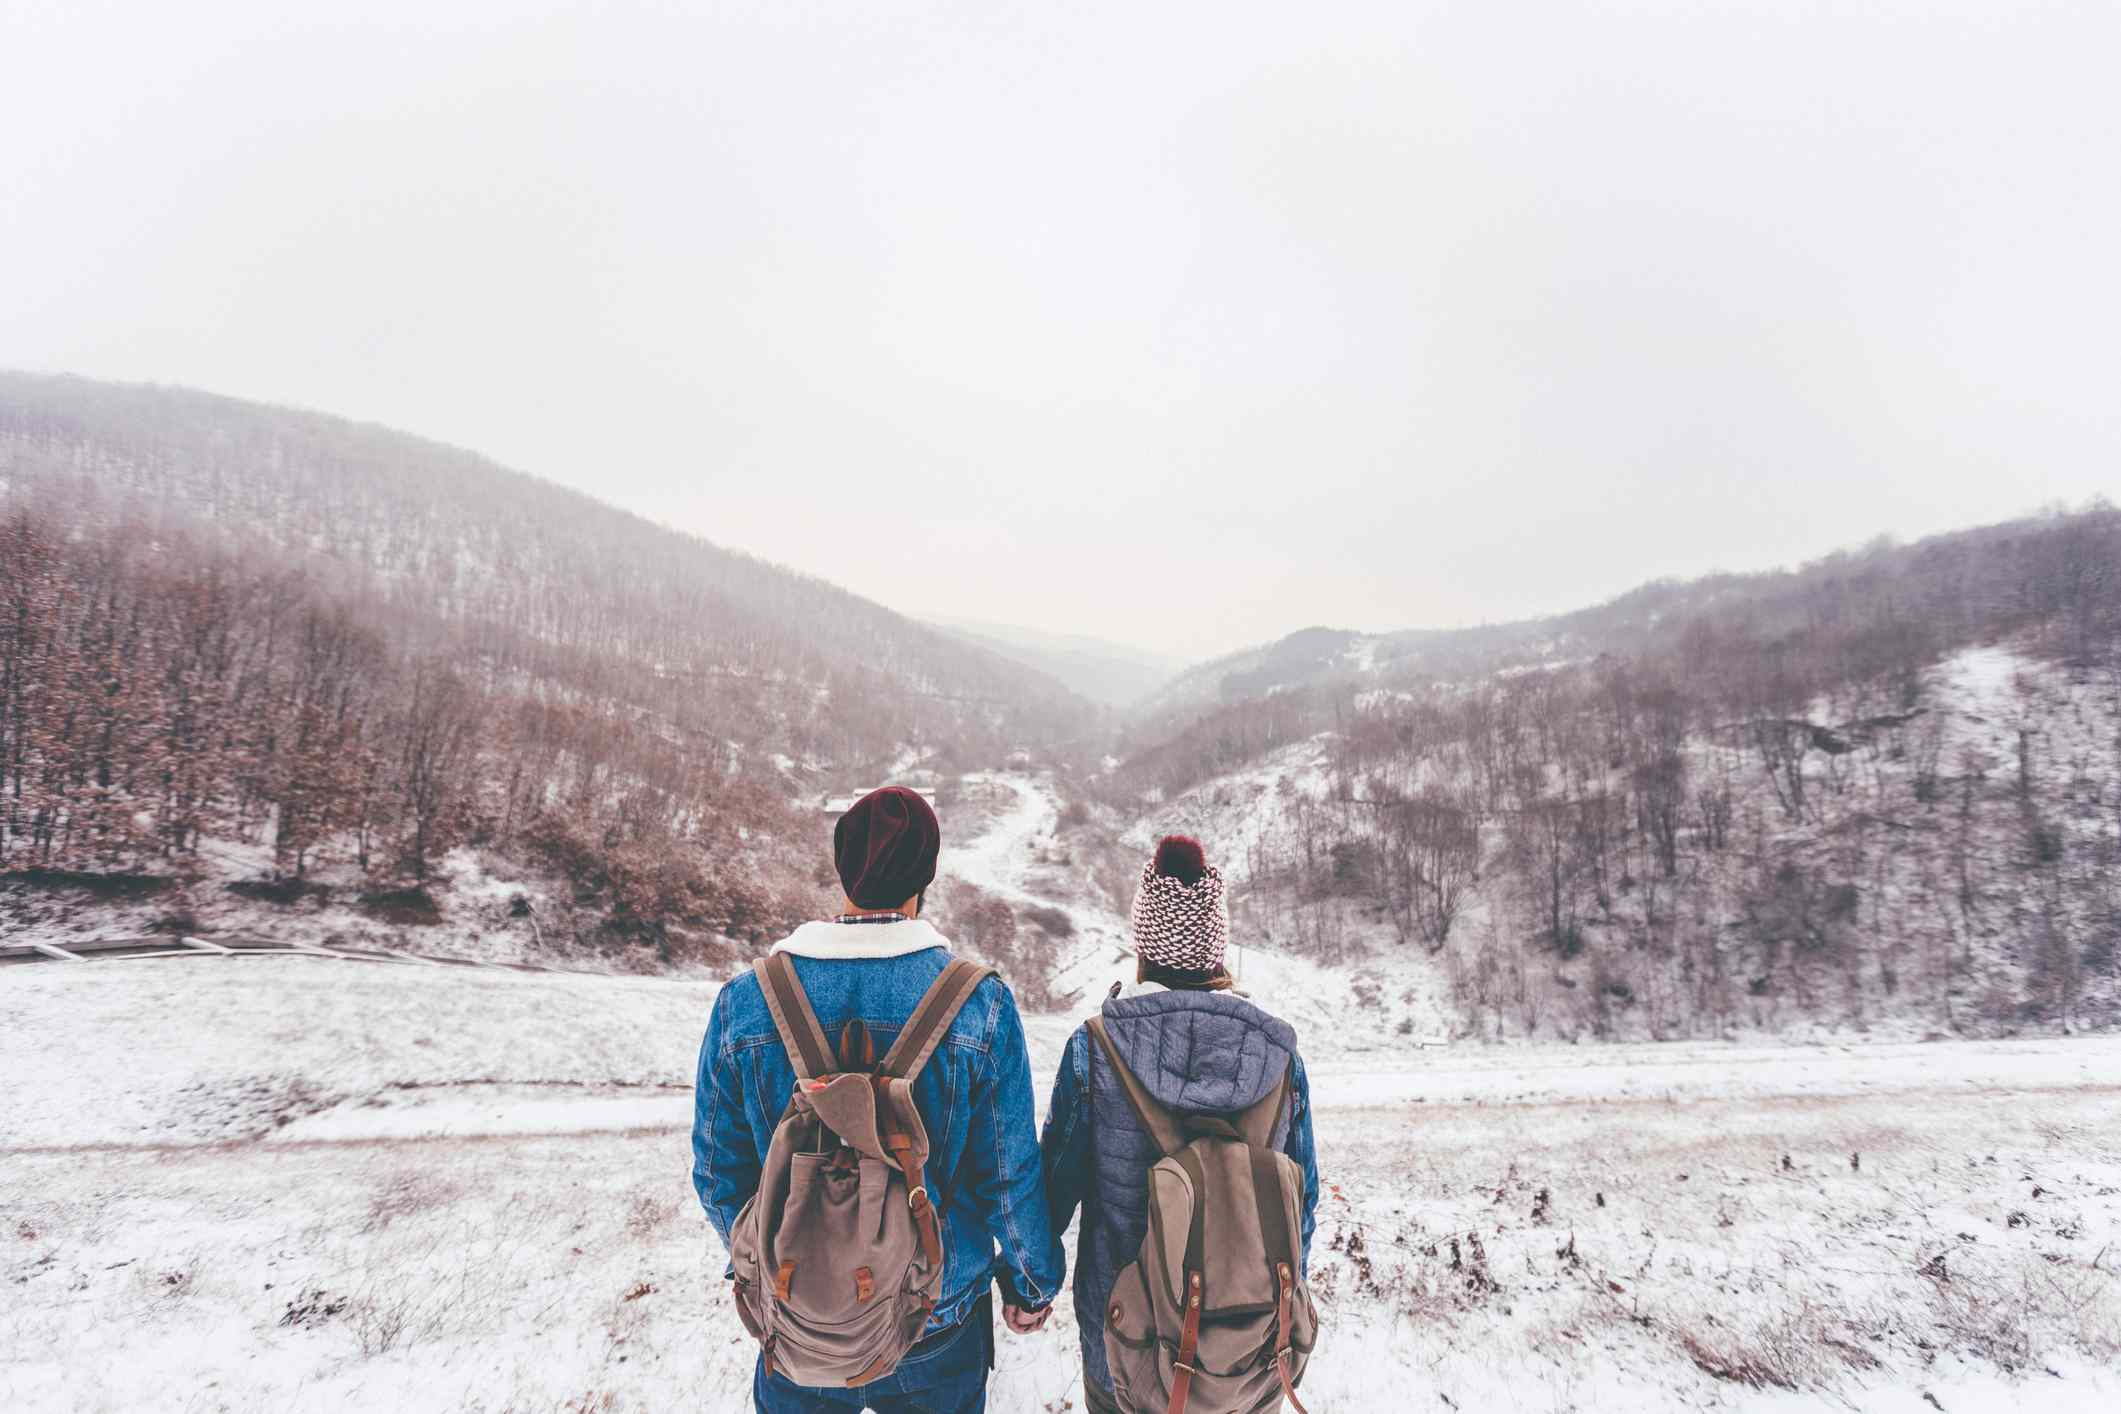 Couple holding hands and looking out at snowy scene